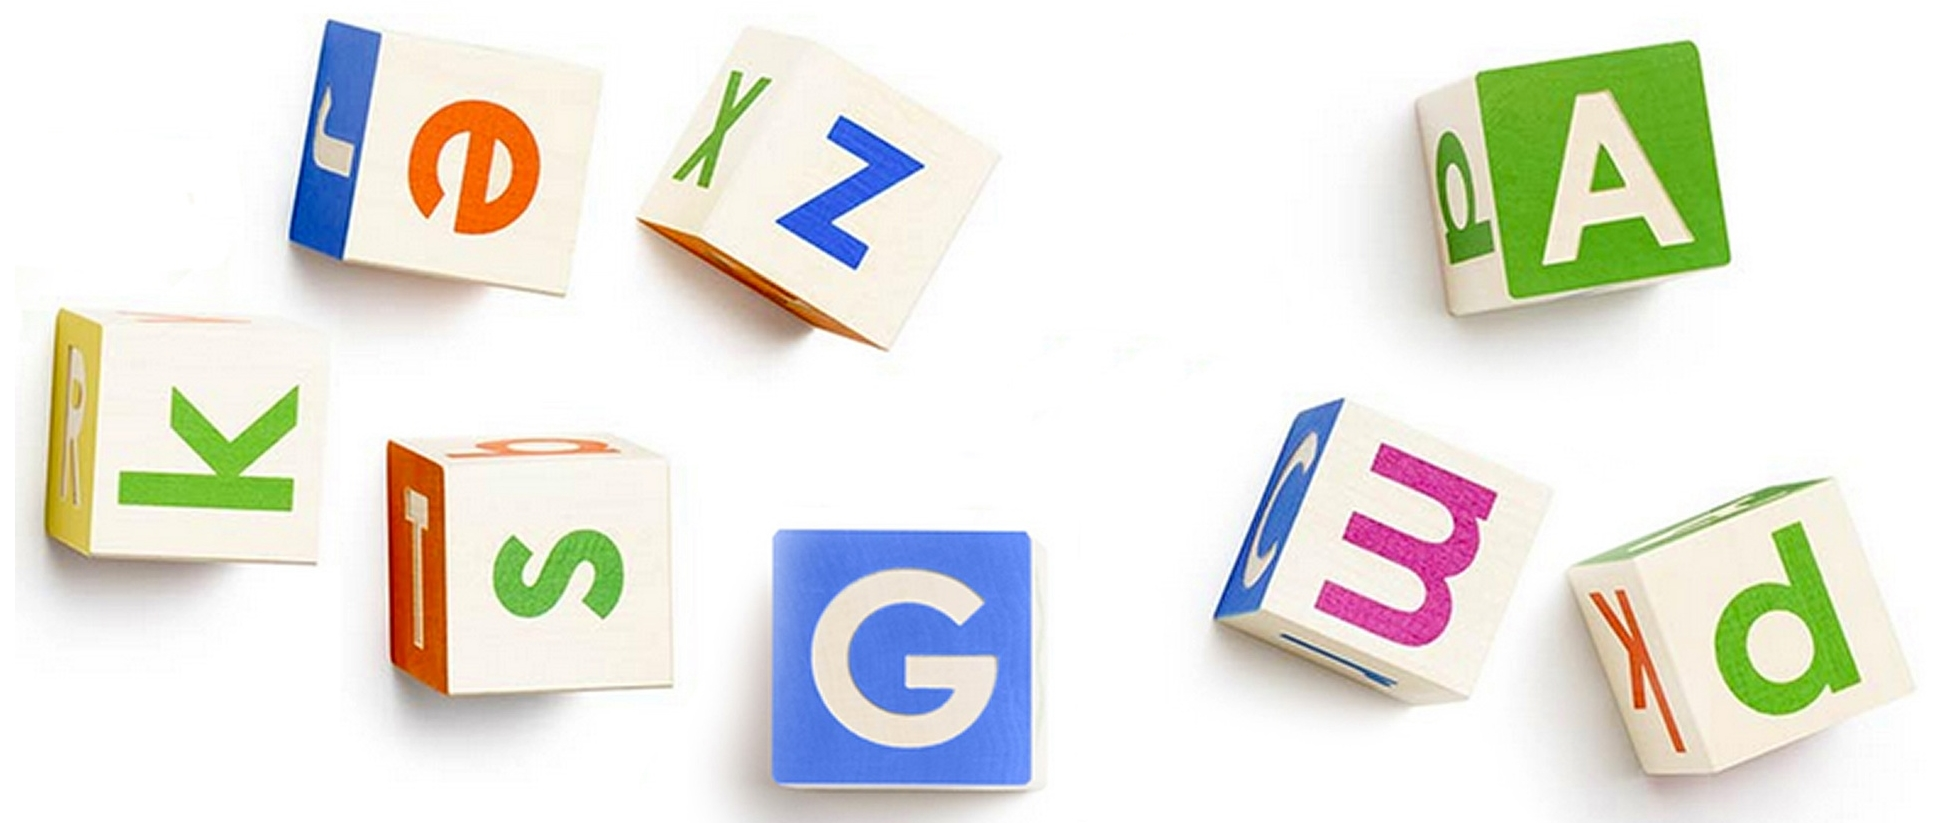 Alphabet Reports $20bn Revenues for Q1